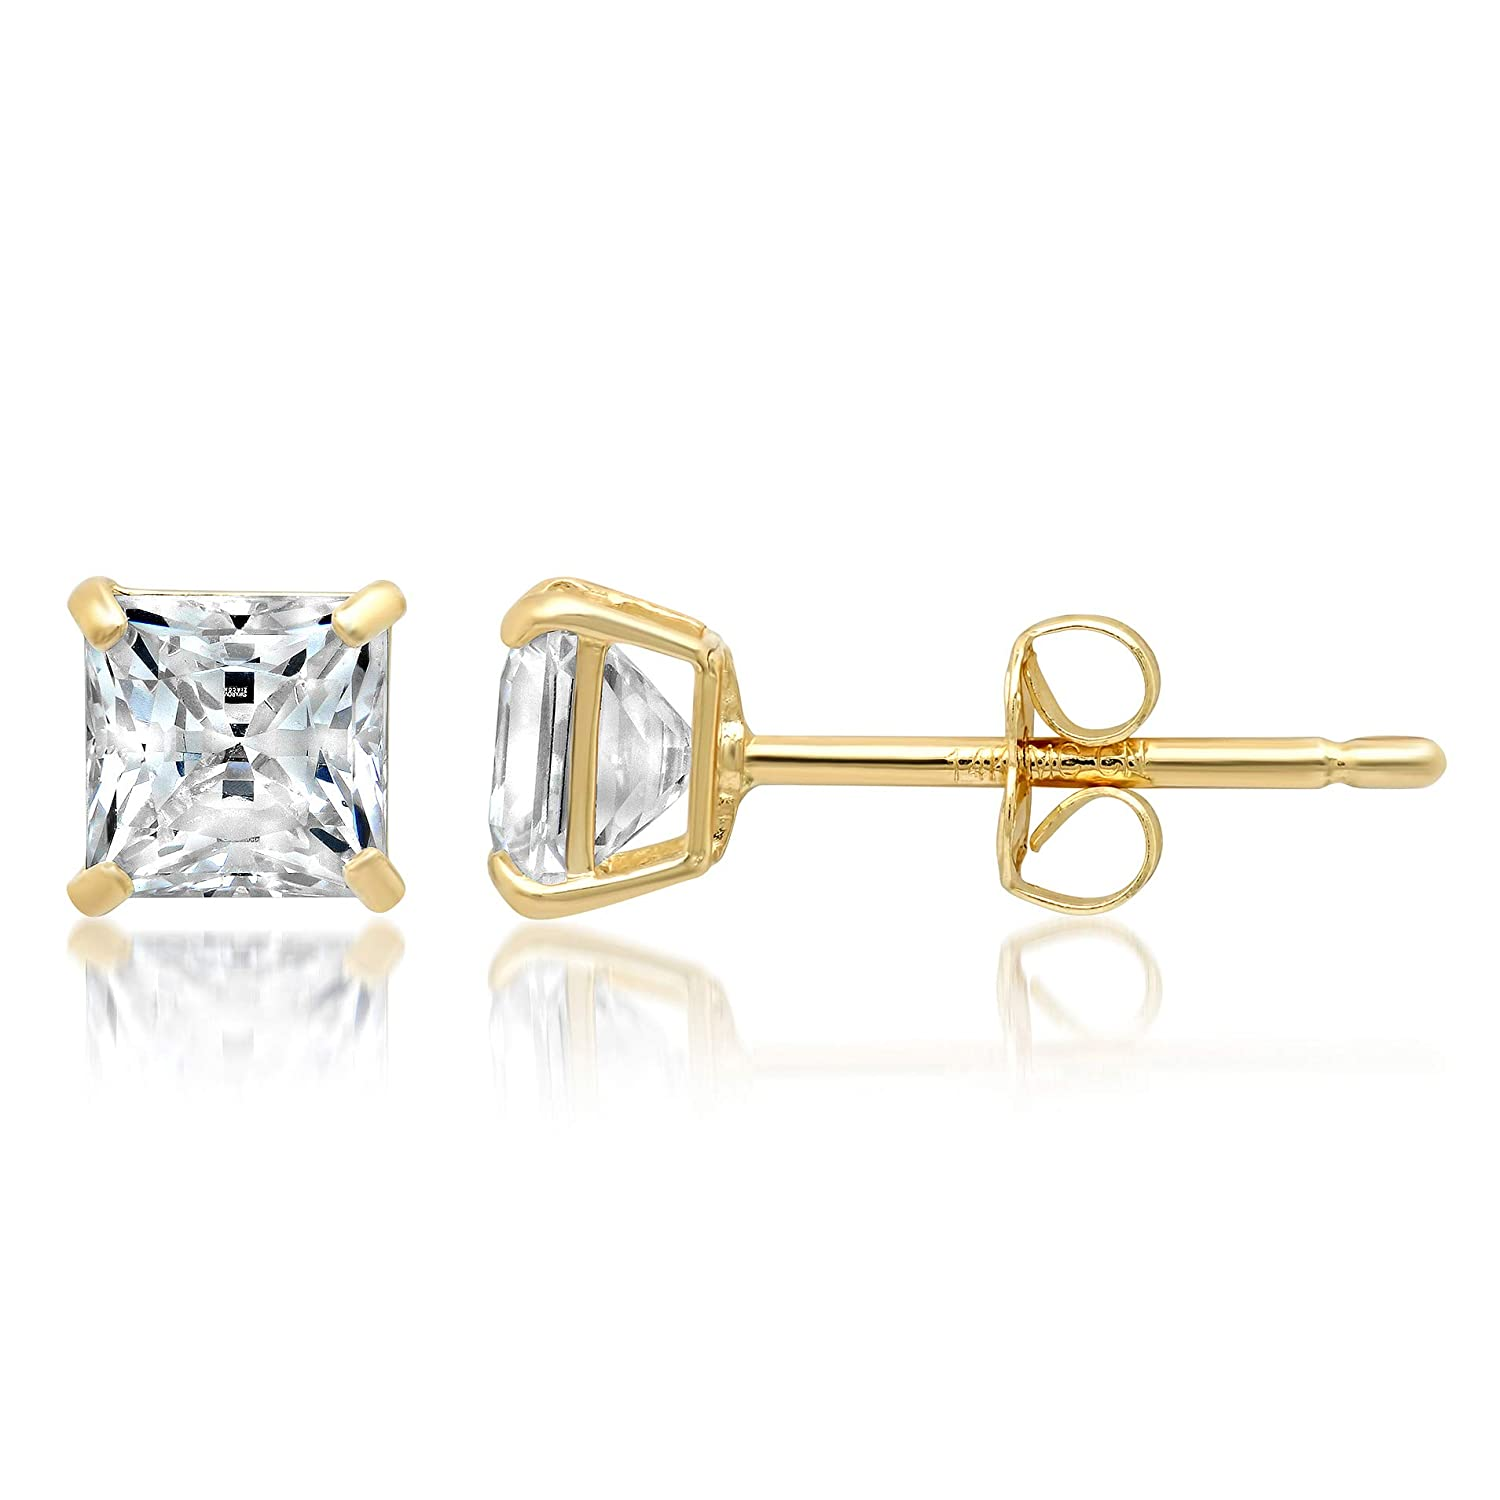 14k Solid Gold PRINCESS Stud Earrings with Genuine Swarovski Zirconia With Gift Box 1.0 to 3.0 CTW